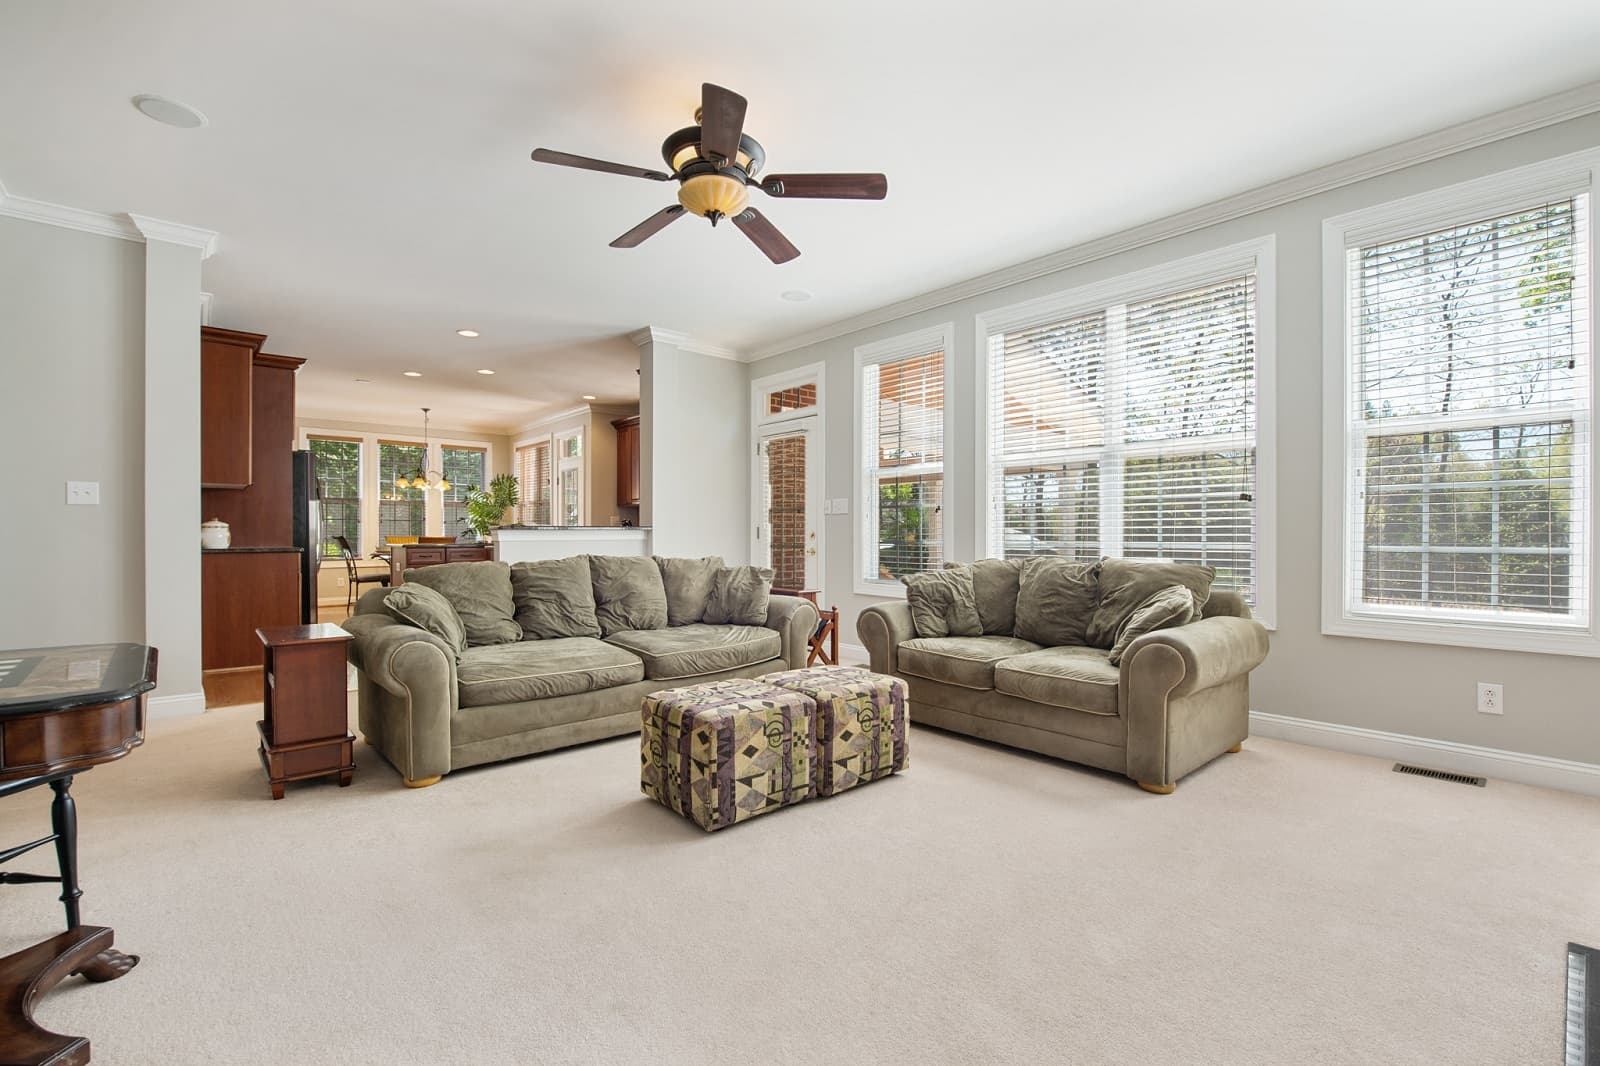 Real Estate Photography in Matthews - NC - USA - Living Area View